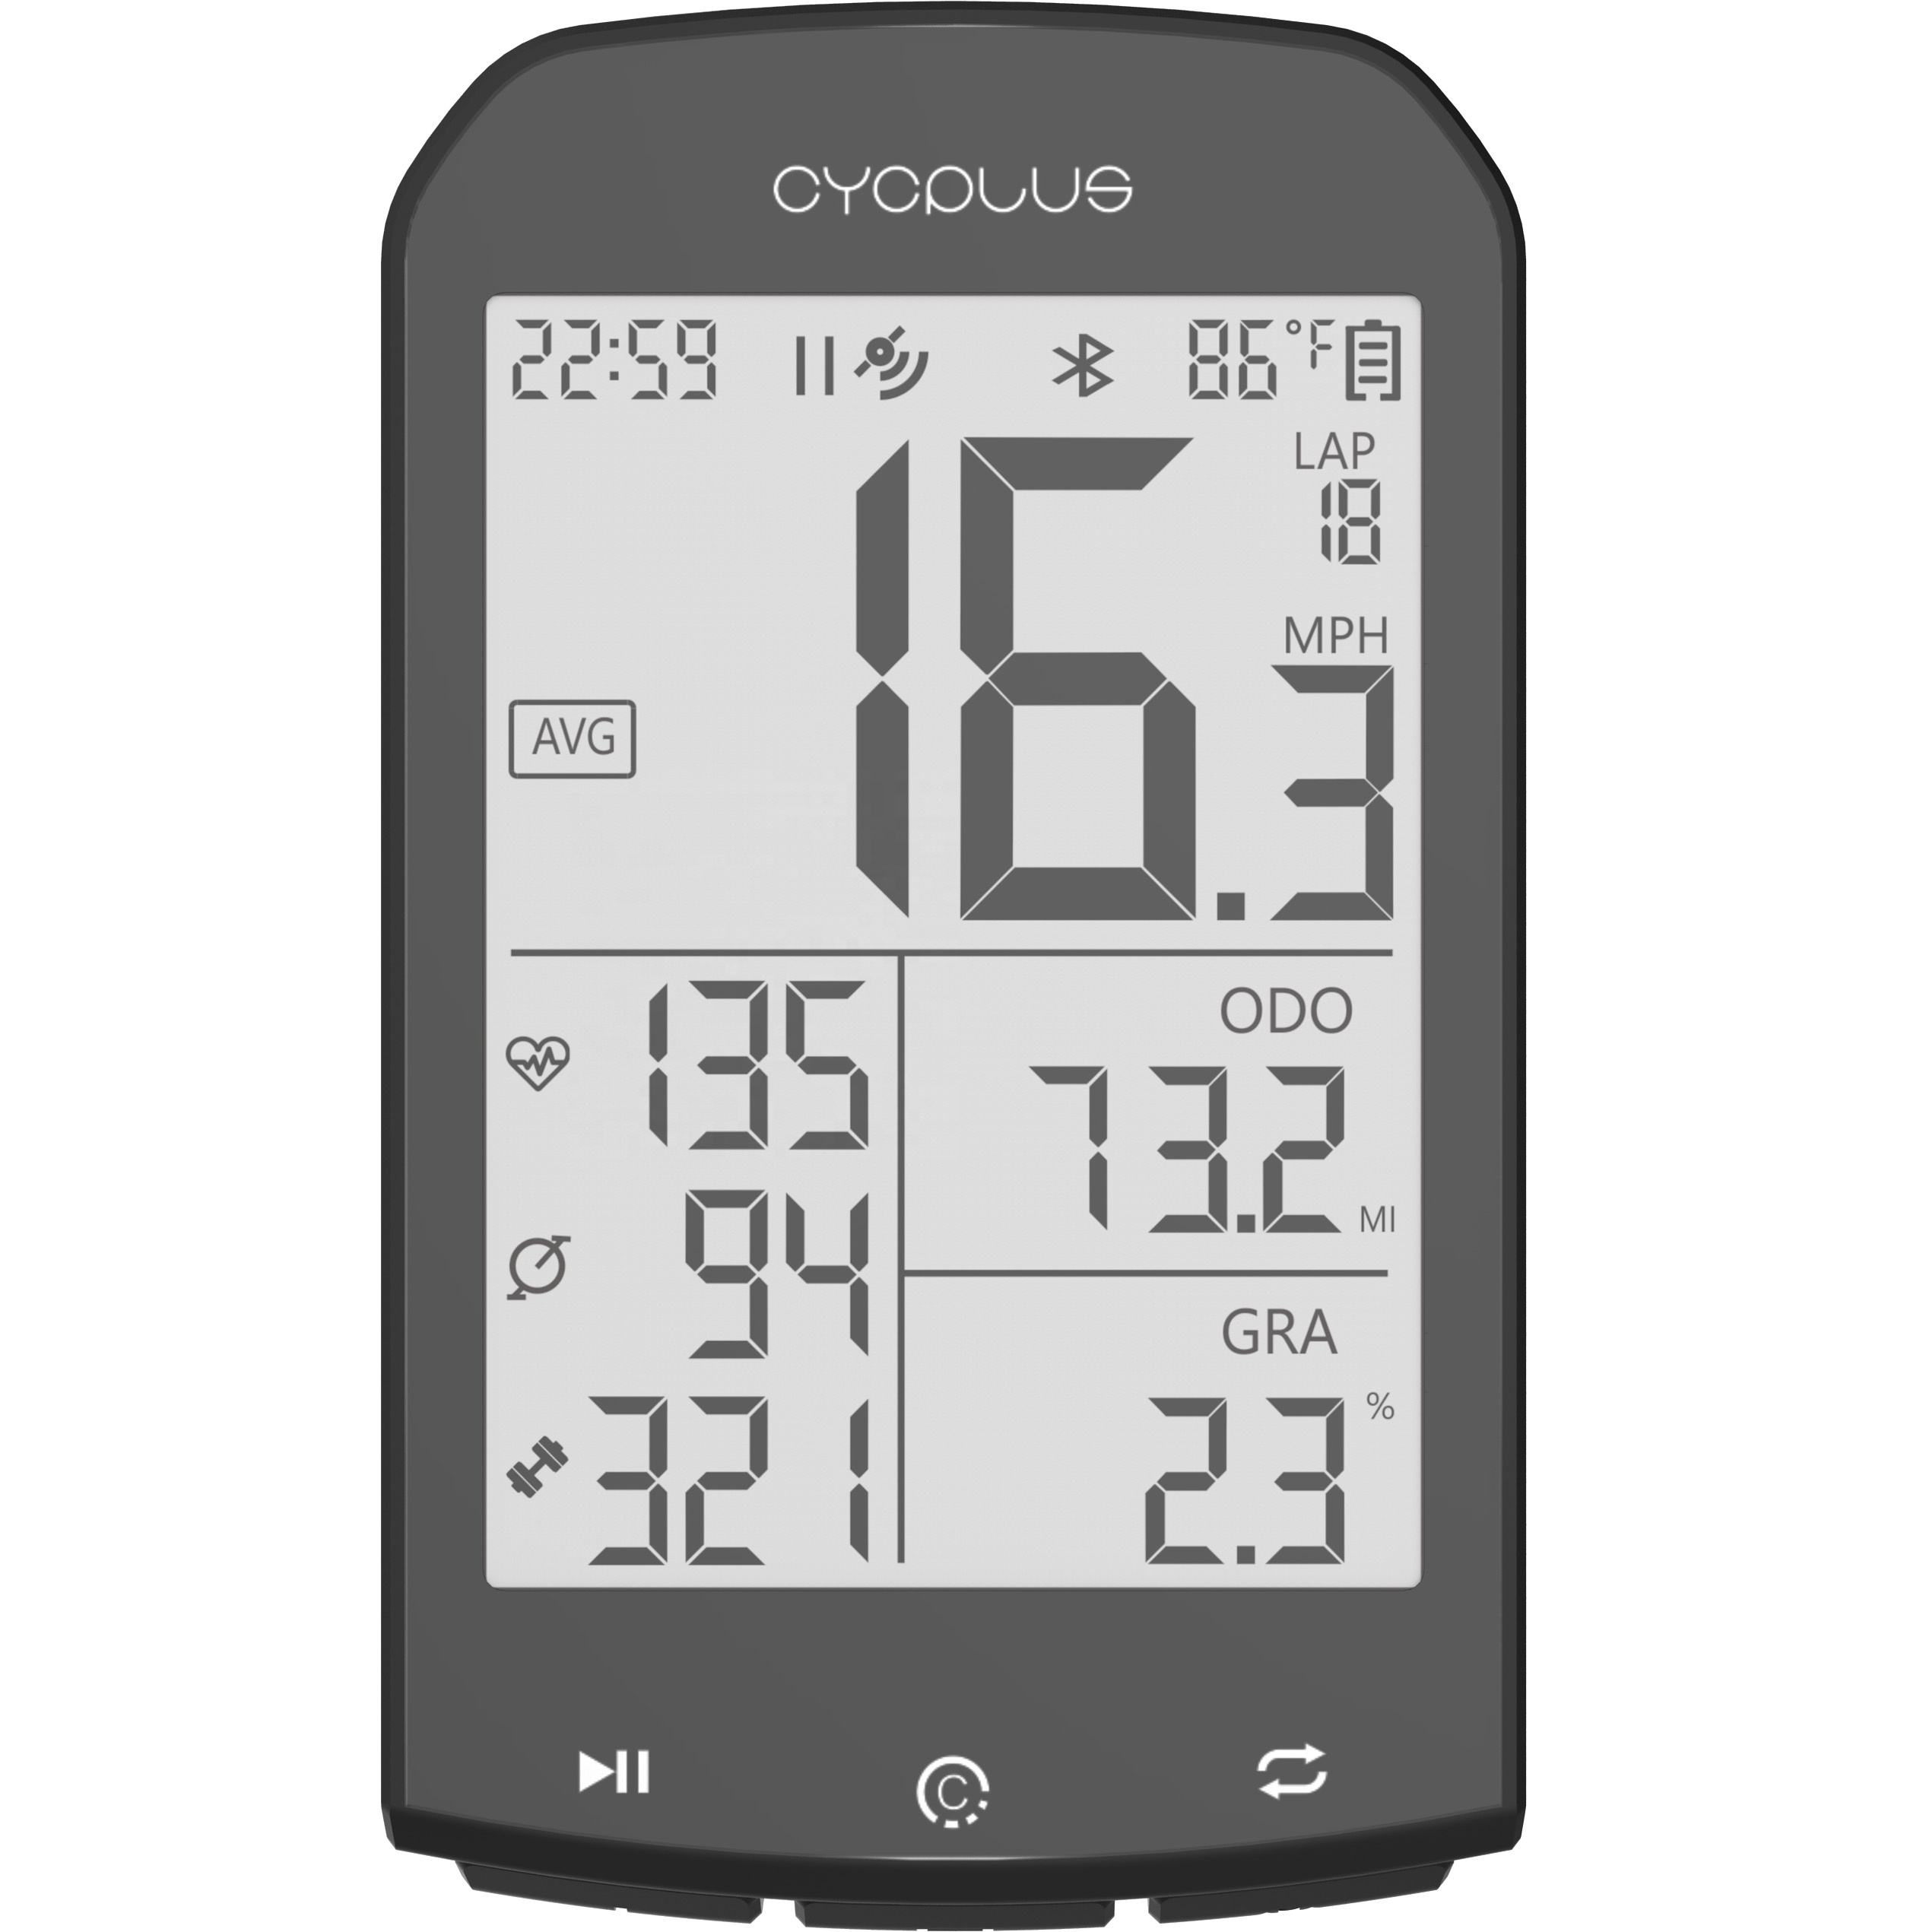 6570 gps cycling bike computer with heart rate monitor power meter